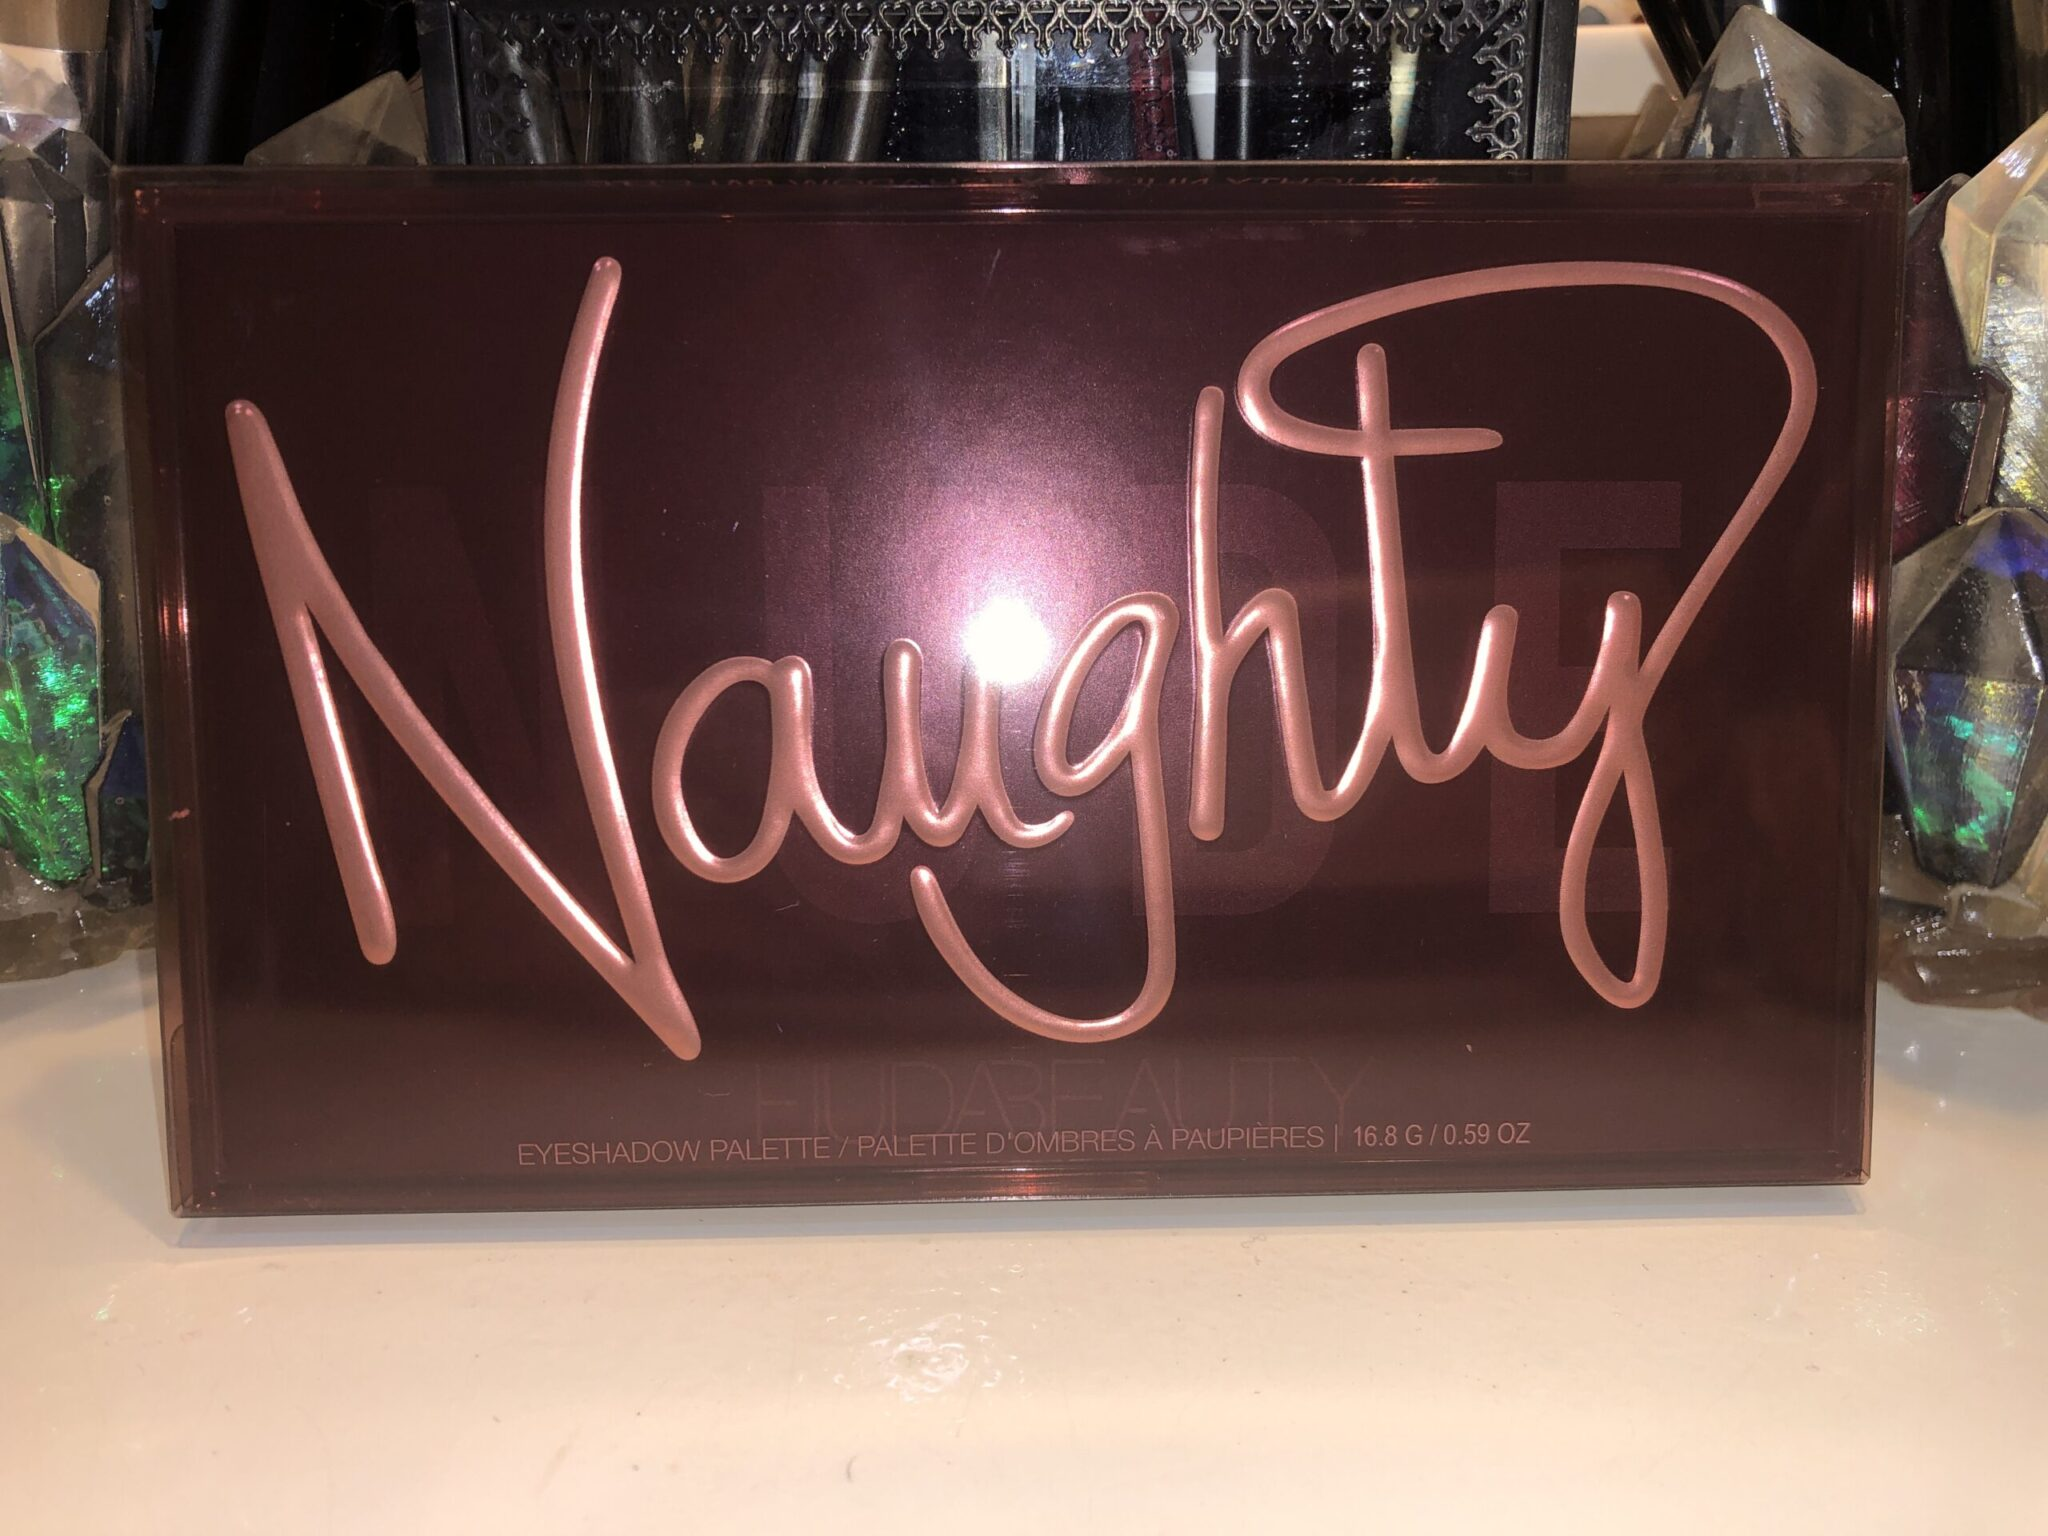 NAUGHTY NUDE EYESHADOW PALETTE OUTER BOX